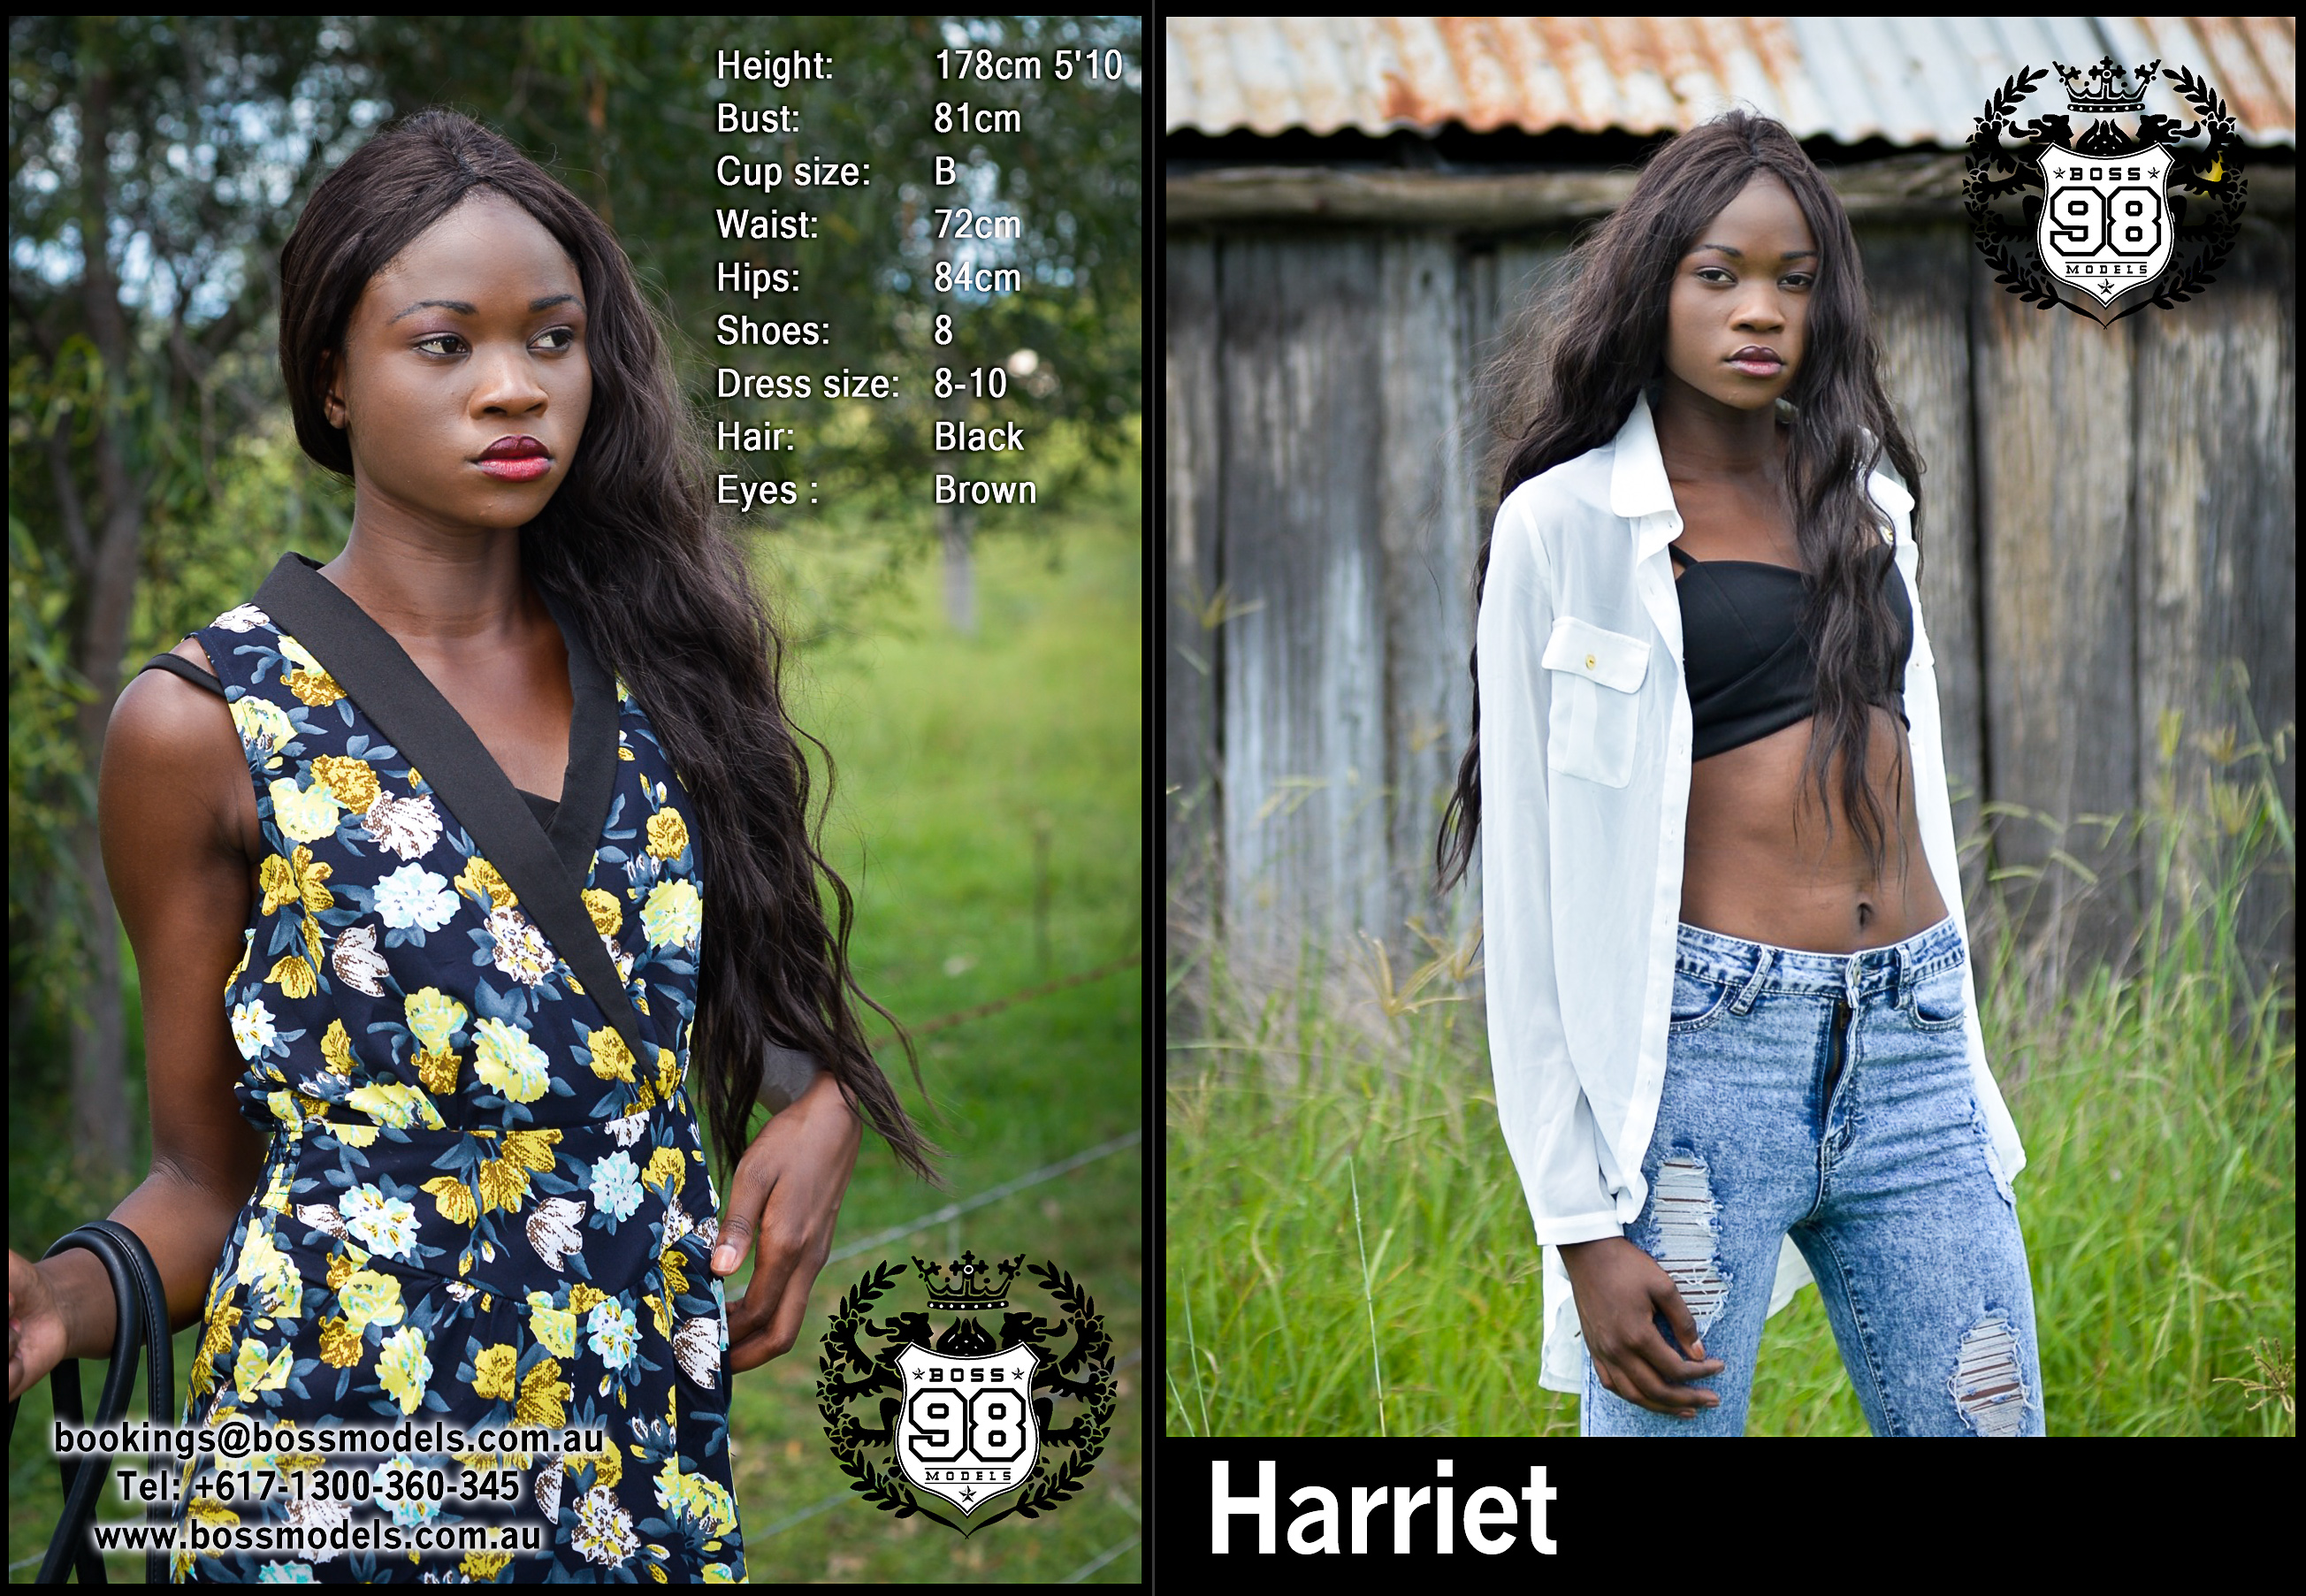 harriet_1_full